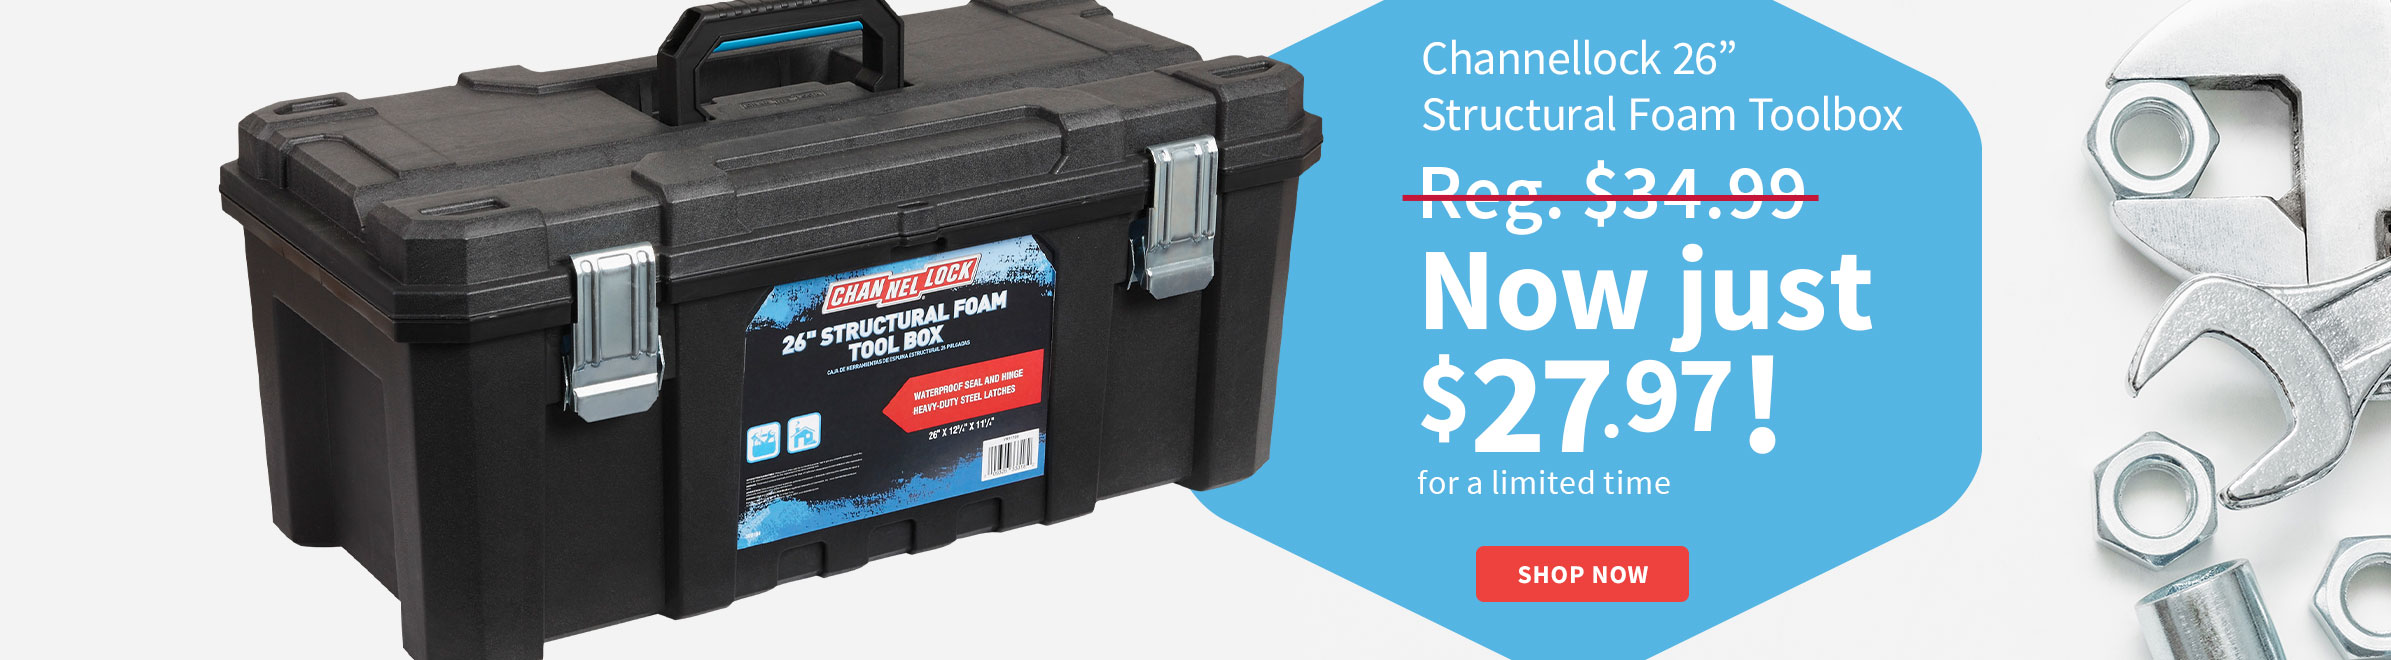 Channellock Toolbox